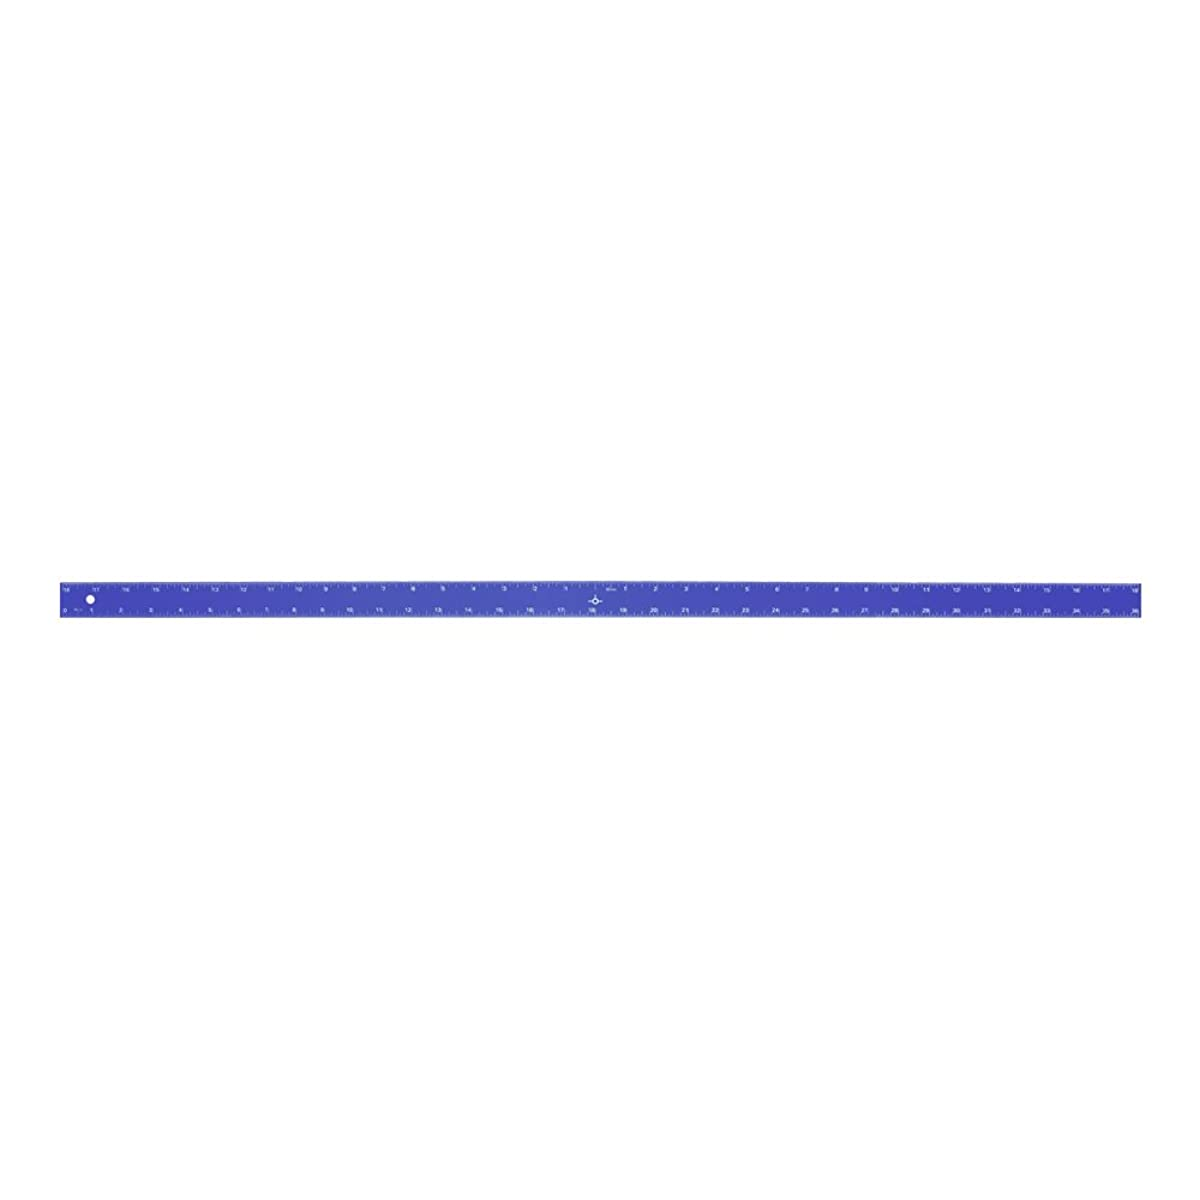 Alumicolor 1596-5 Aluminum Straight Edge with Center Finding Back, 36IN, Blue